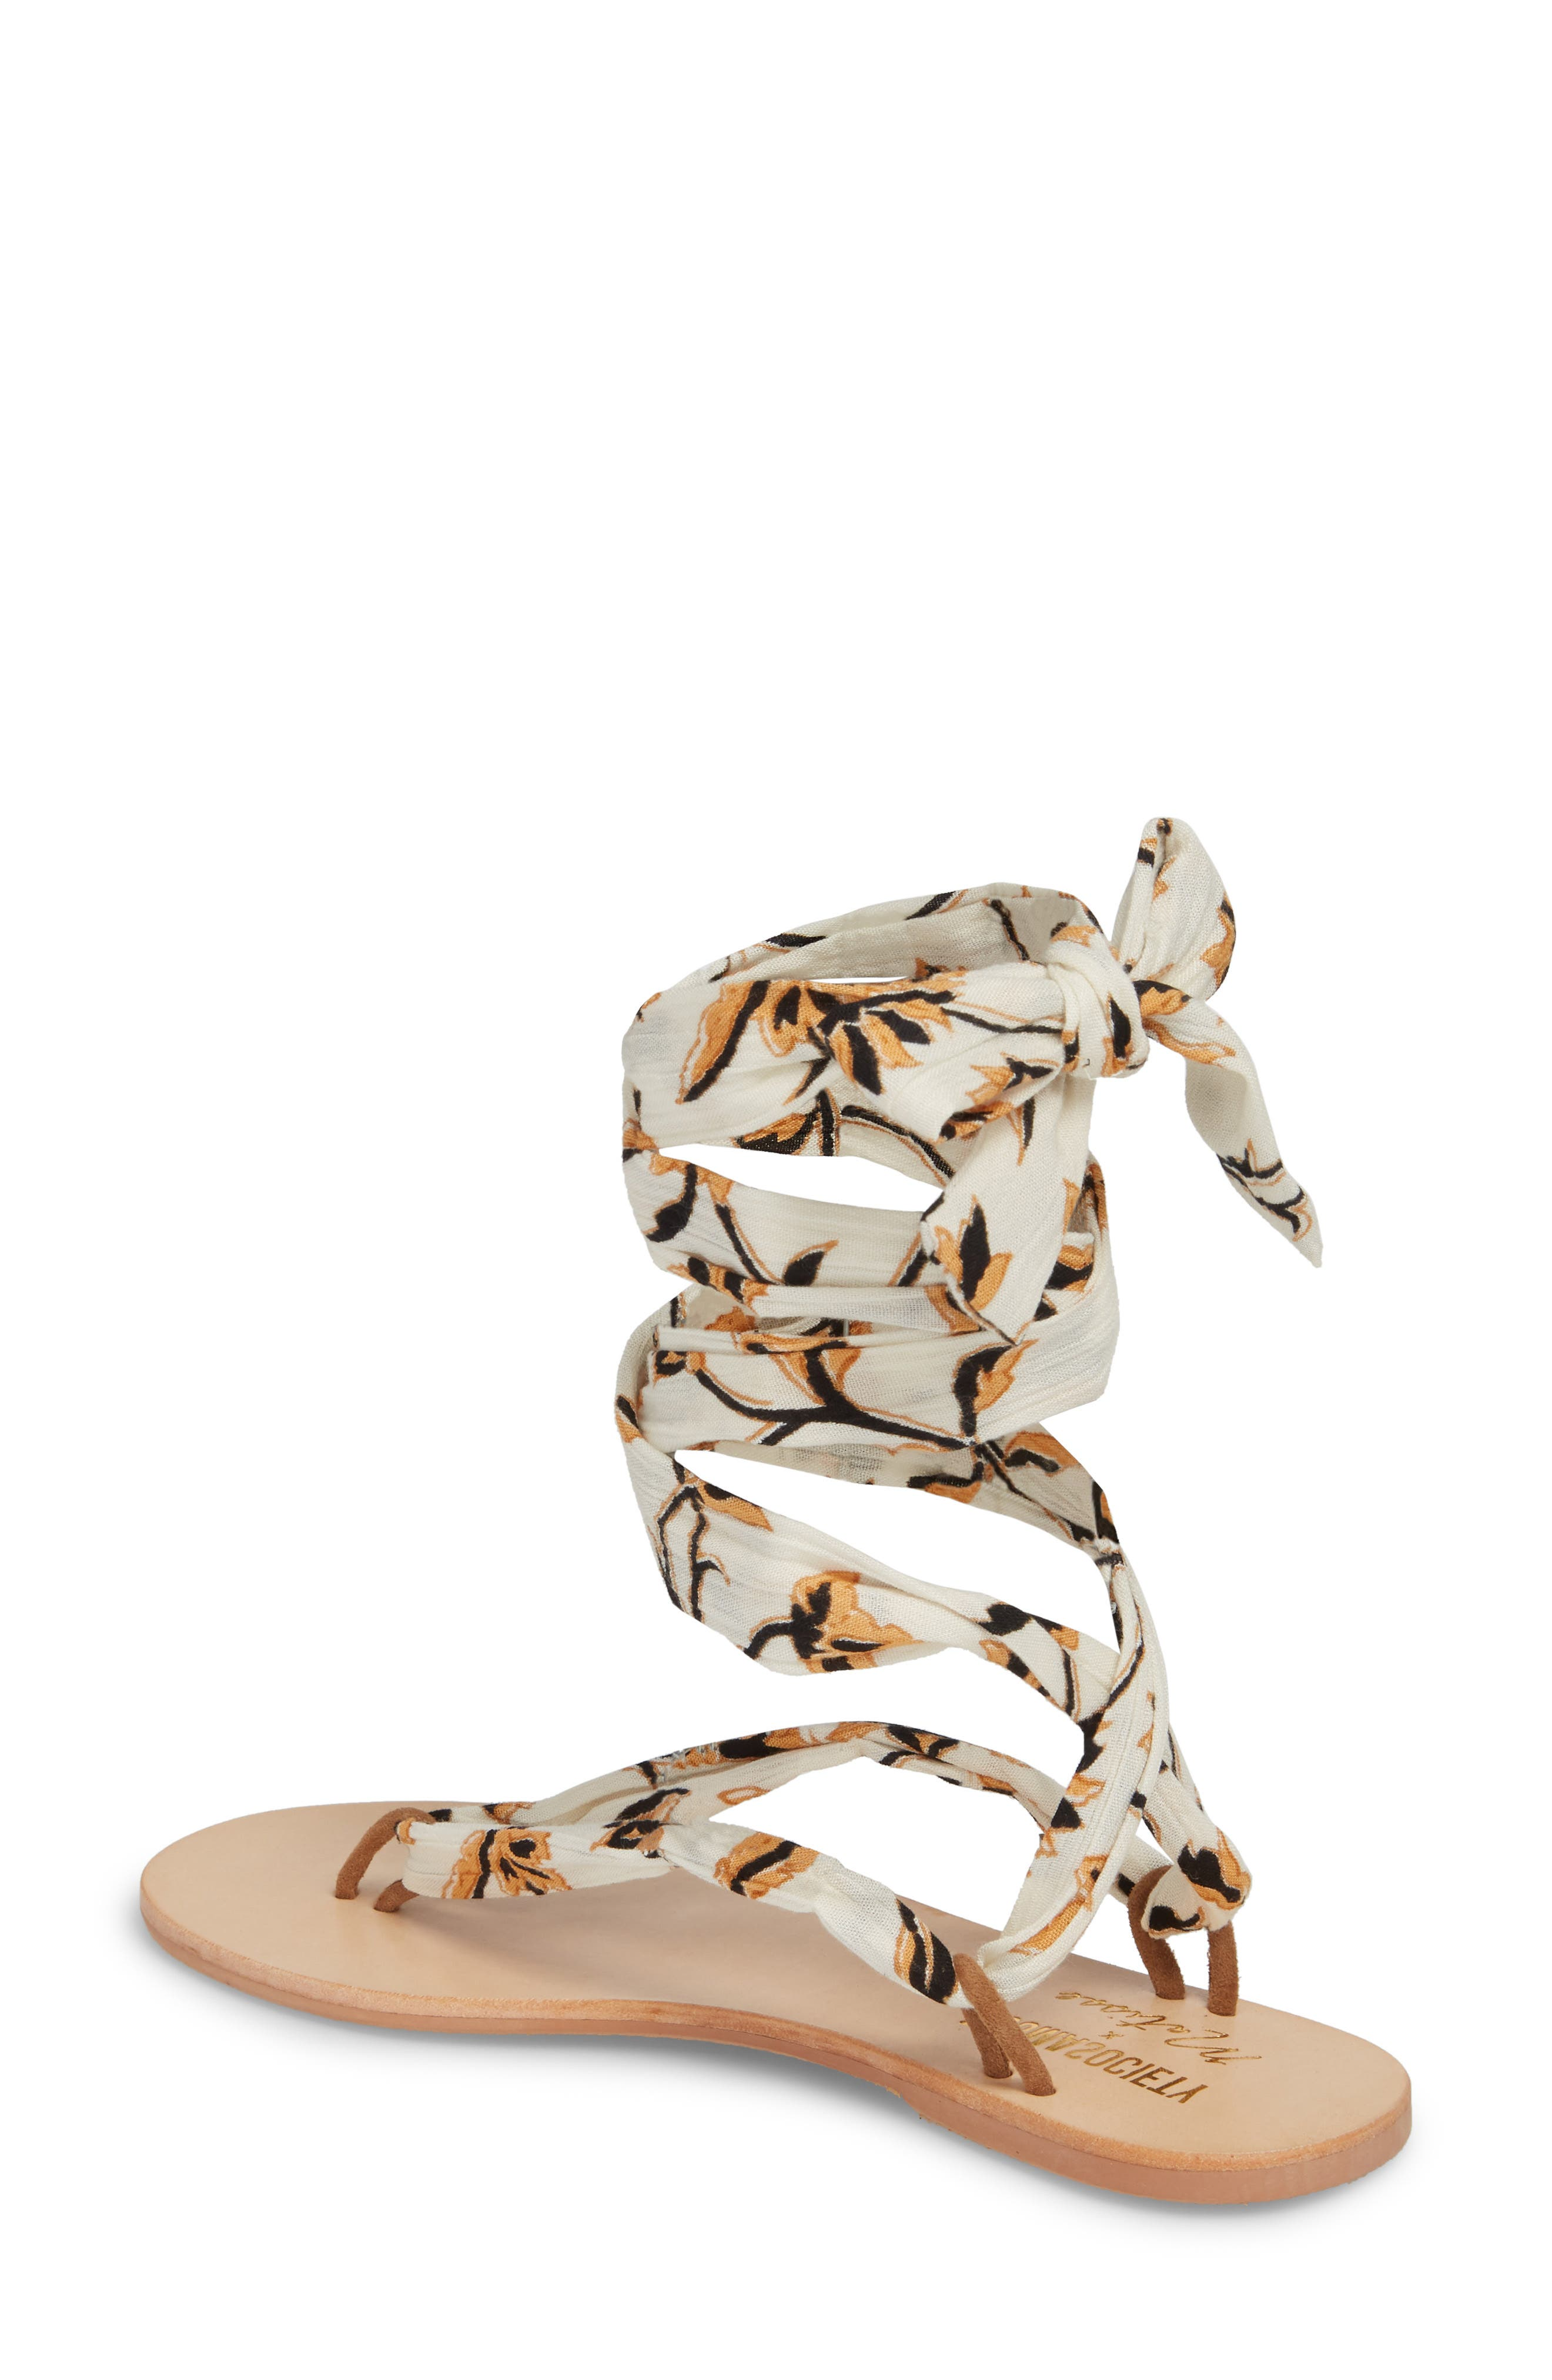 Amuse Society x Matisse Oceano Lace-Up Sandal,                             Alternate thumbnail 2, color,                             Natural Fabric